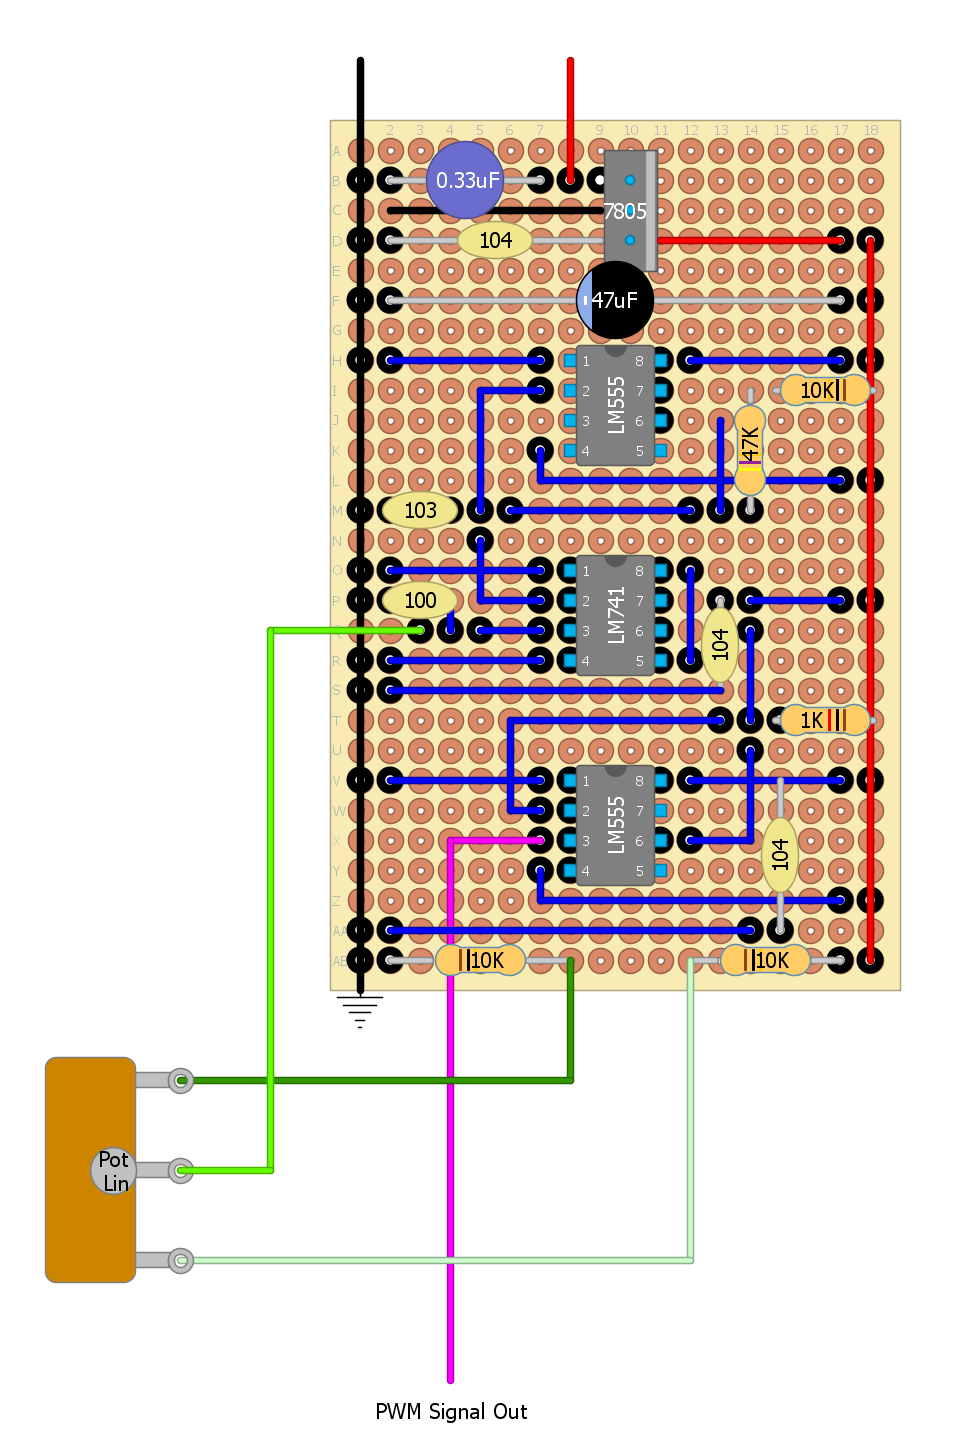 medium resolution of  thing http www overclockers com forums showthread php 641111 building pwm controller for 4 wires pwm fan p 6473318 viewfull 1 post6473318 schematic